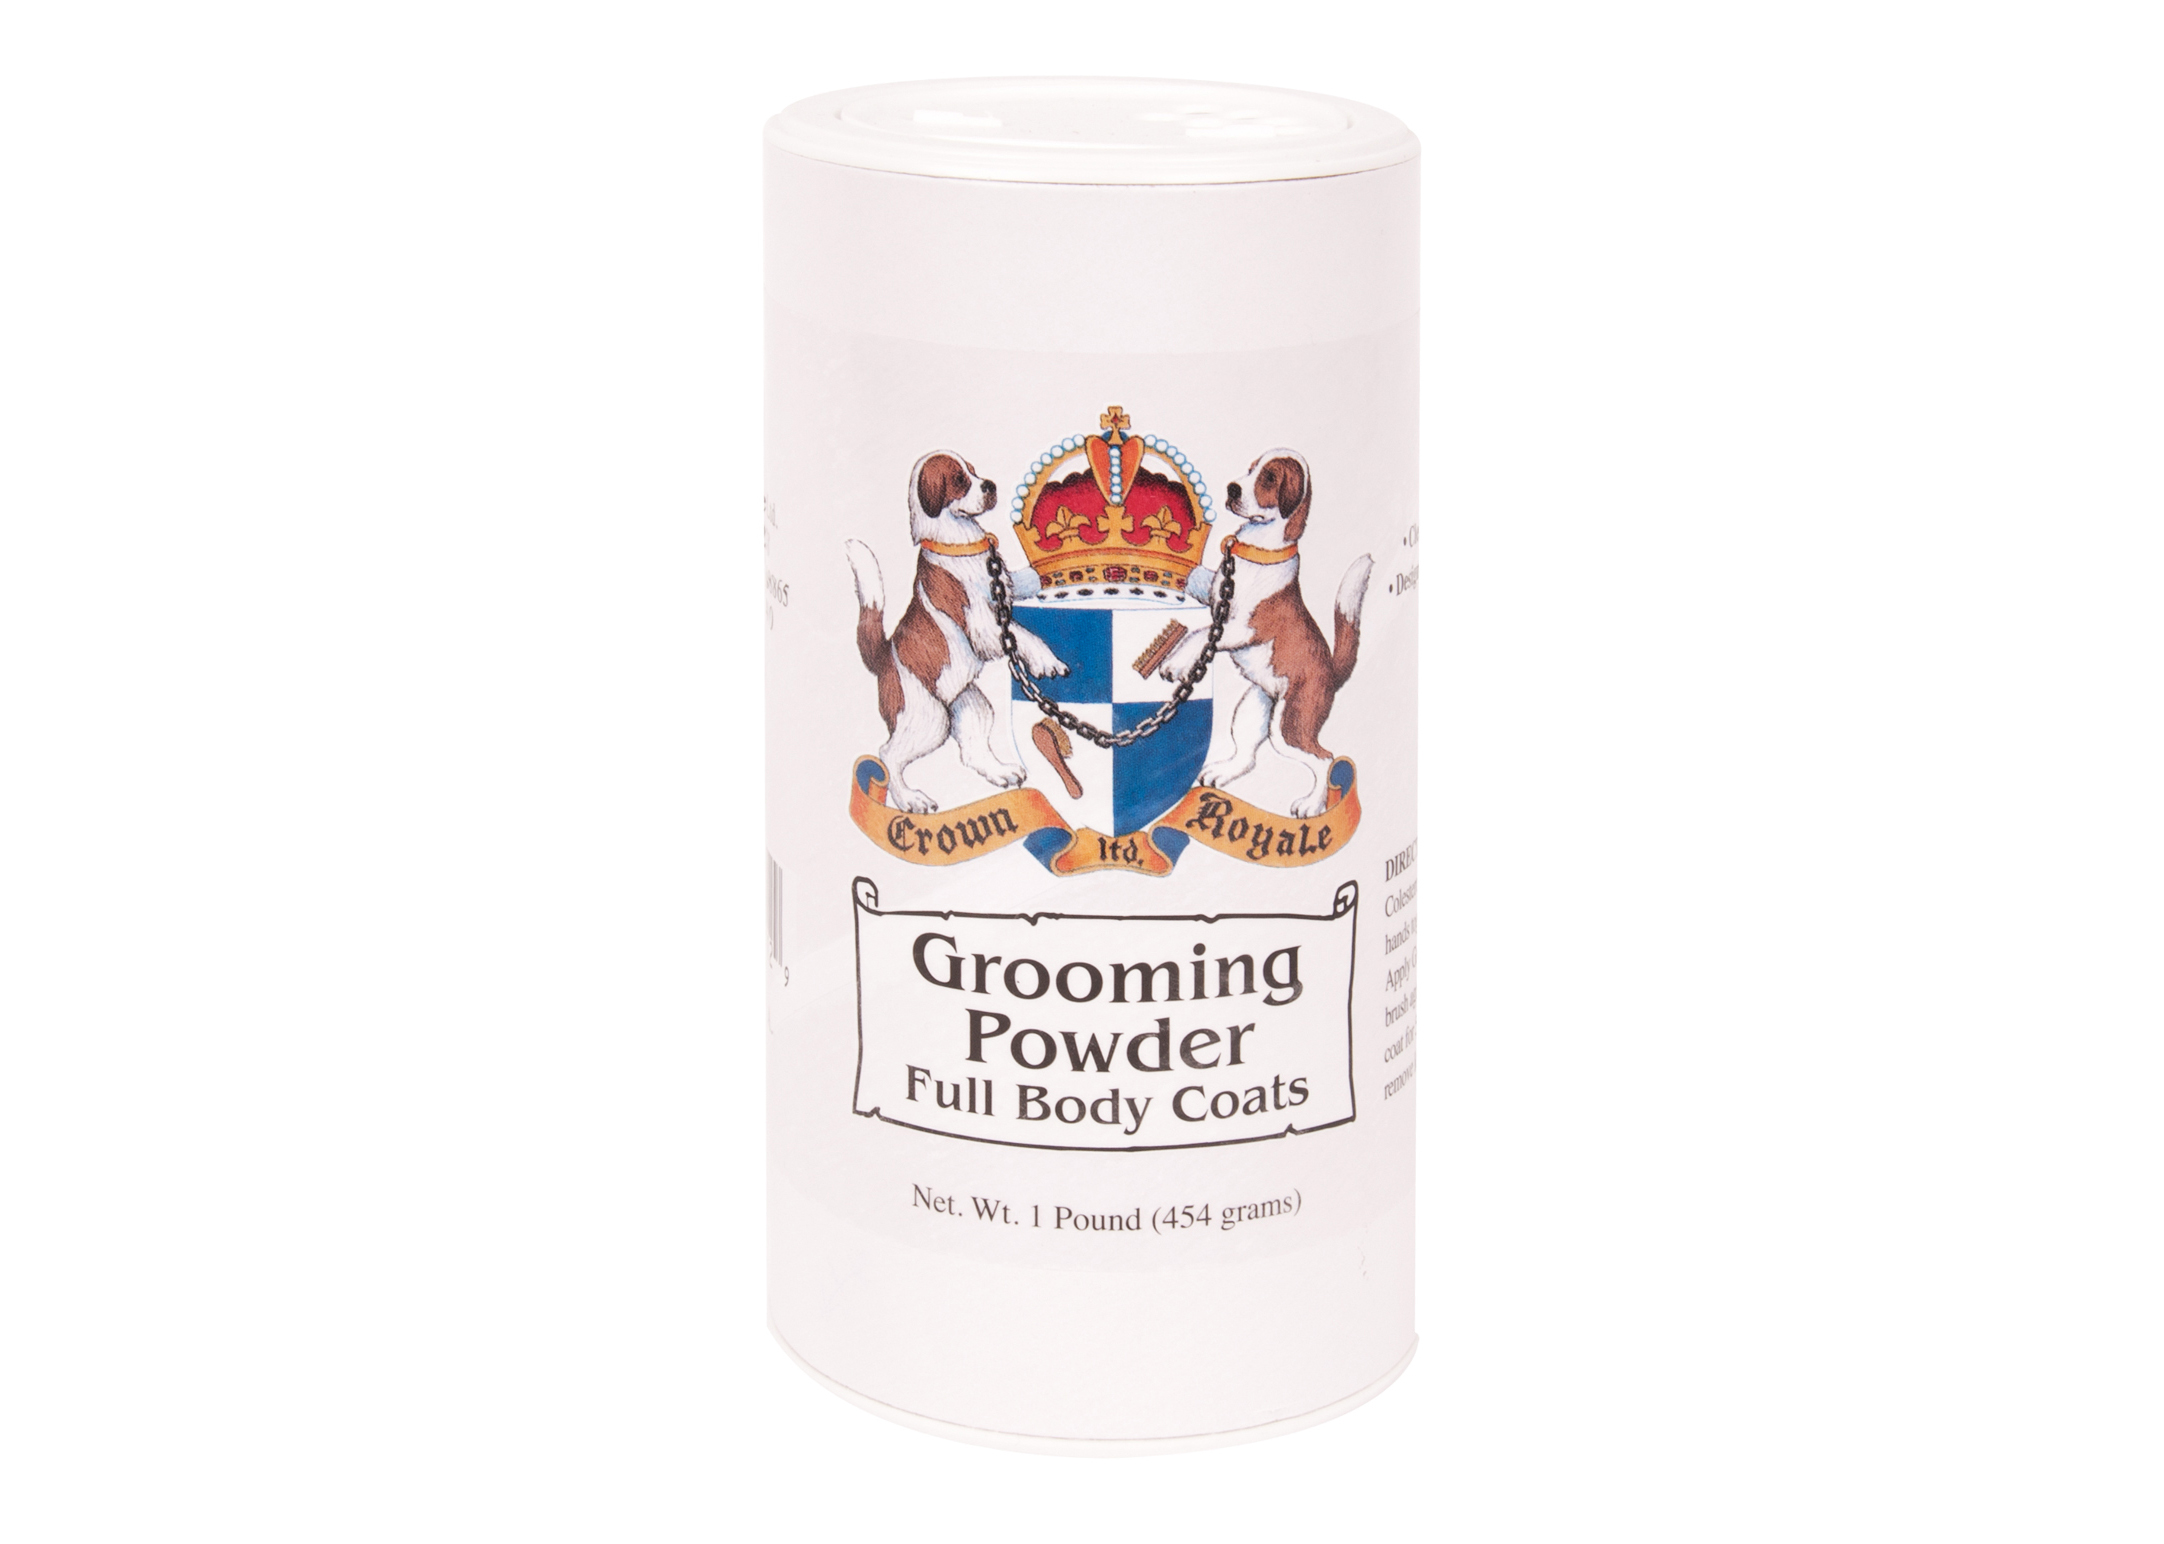 Crown Royale Grooming Powder Full Body Coats 450 gr Grooming Powder